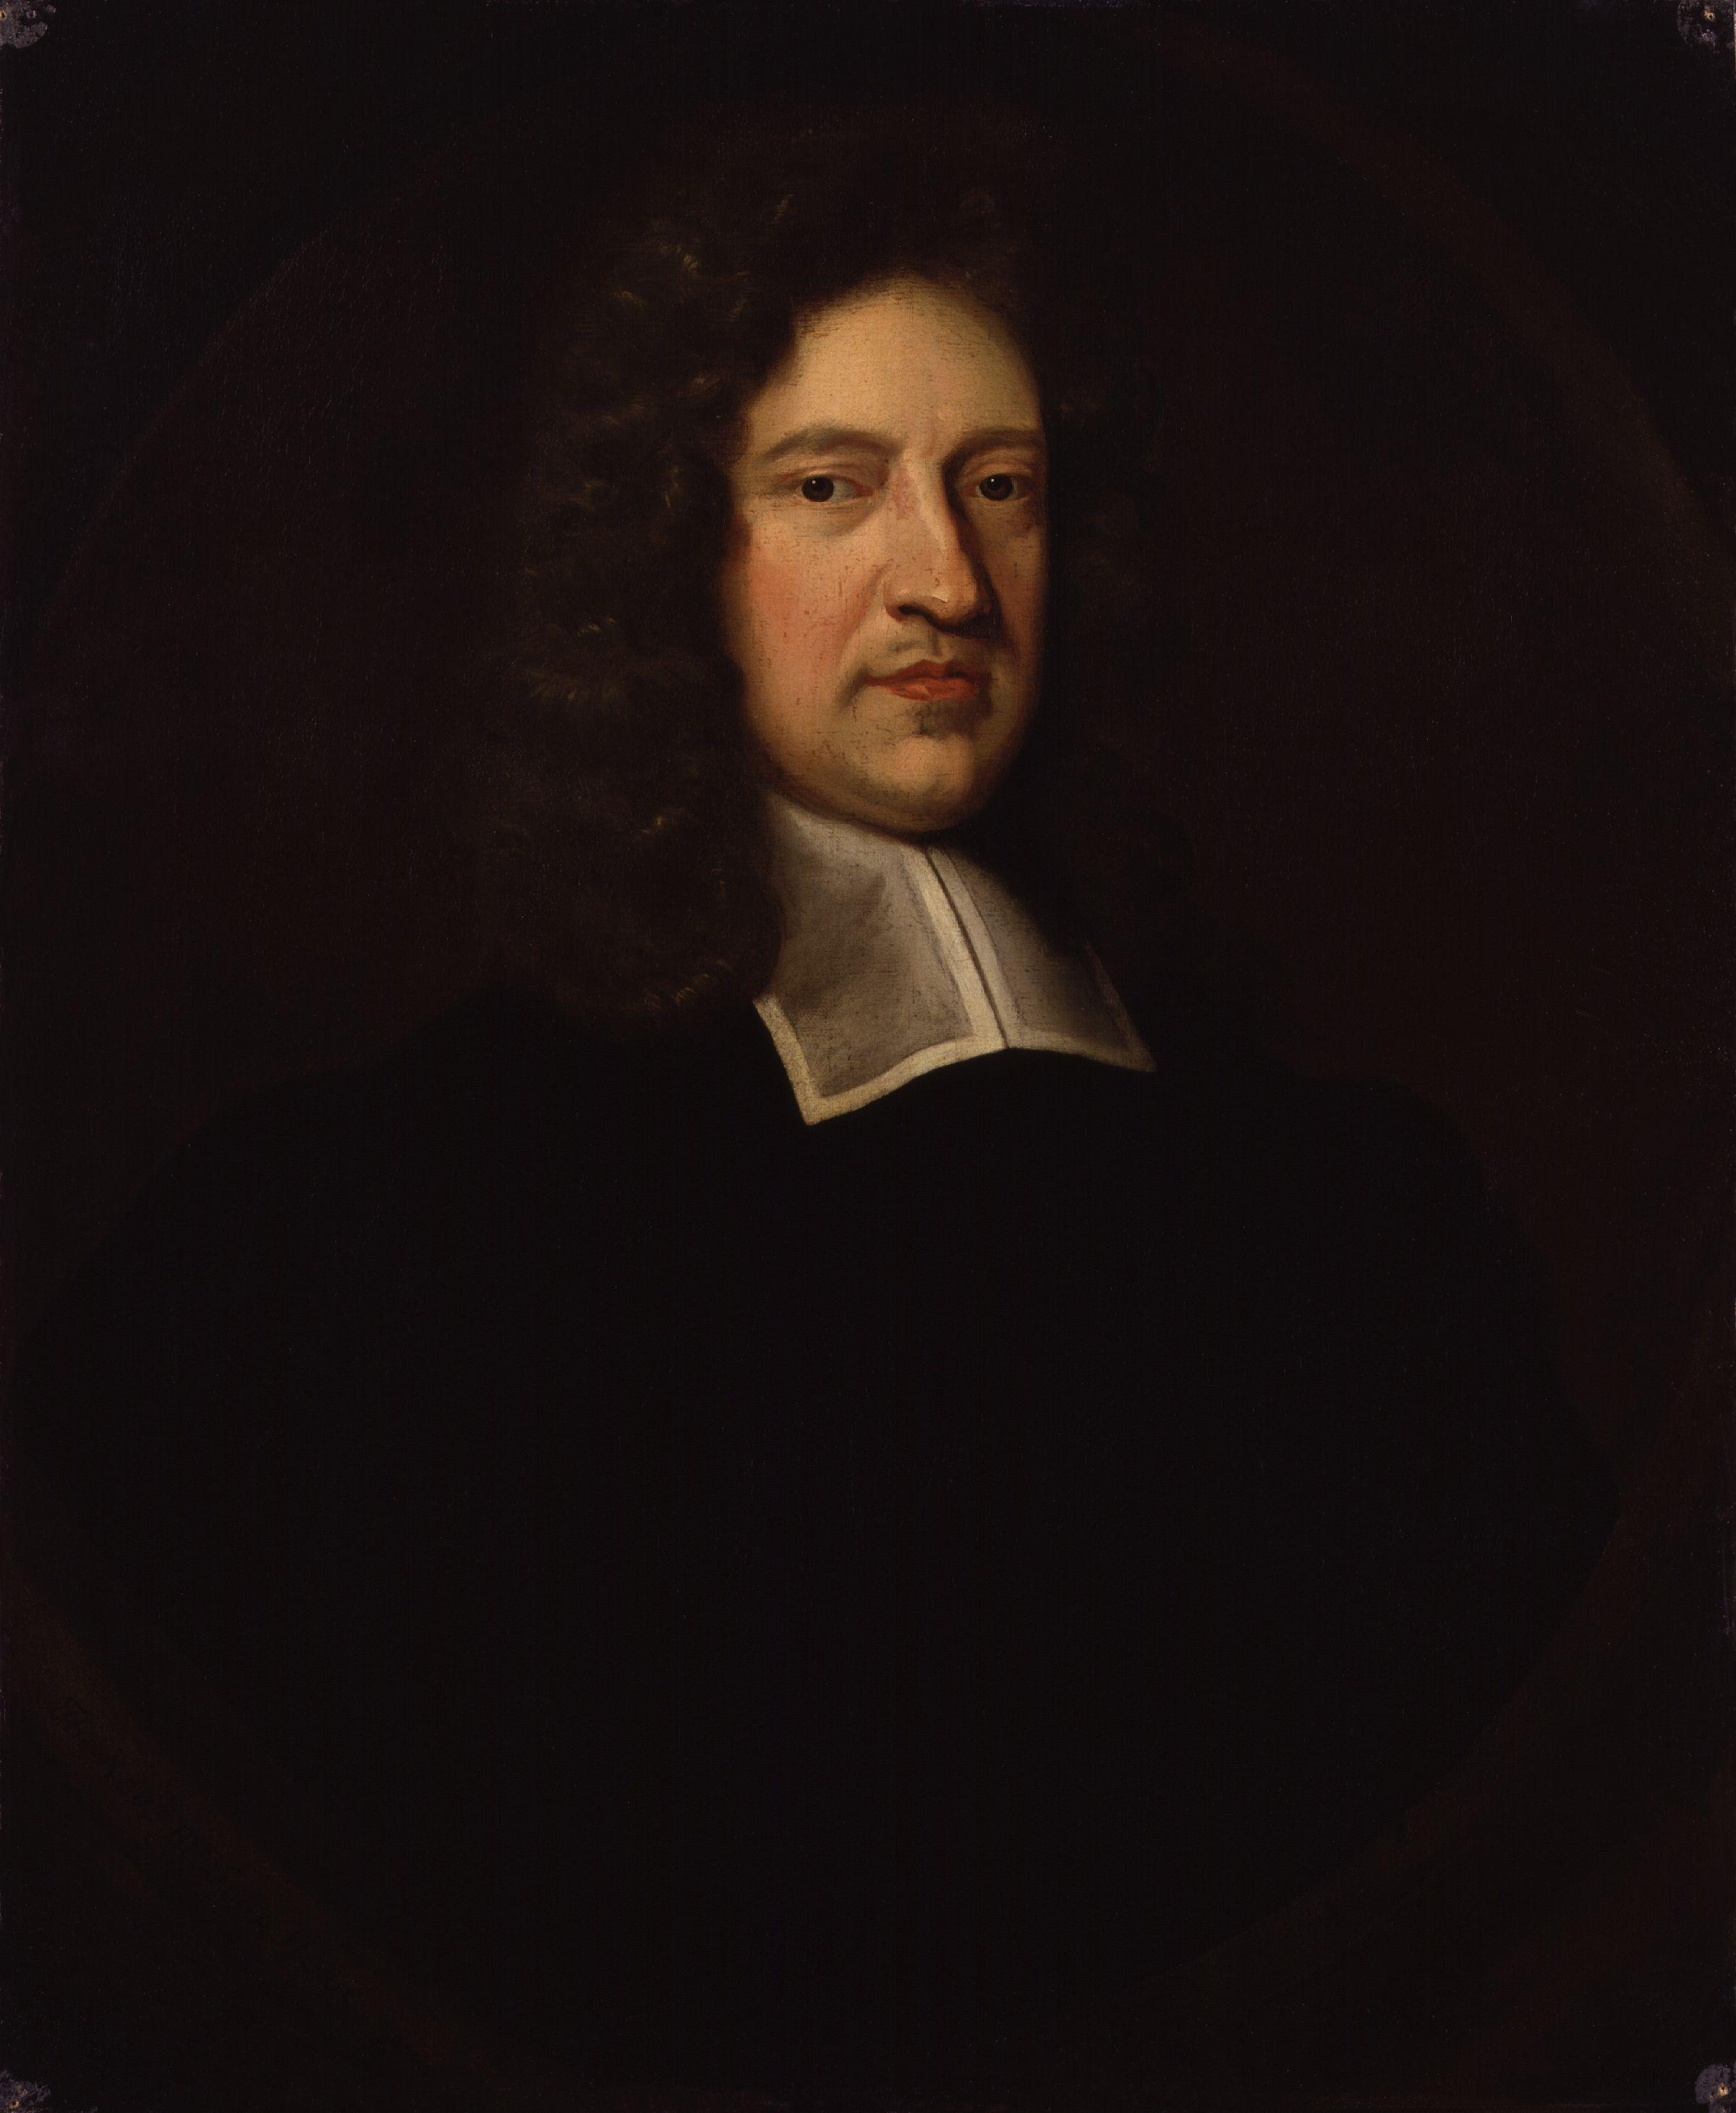 http://upload.wikimedia.org/wikipedia/commons/a/ae/John_Howe_by_Sir_Godfrey_Kneller,_Bt.jpg